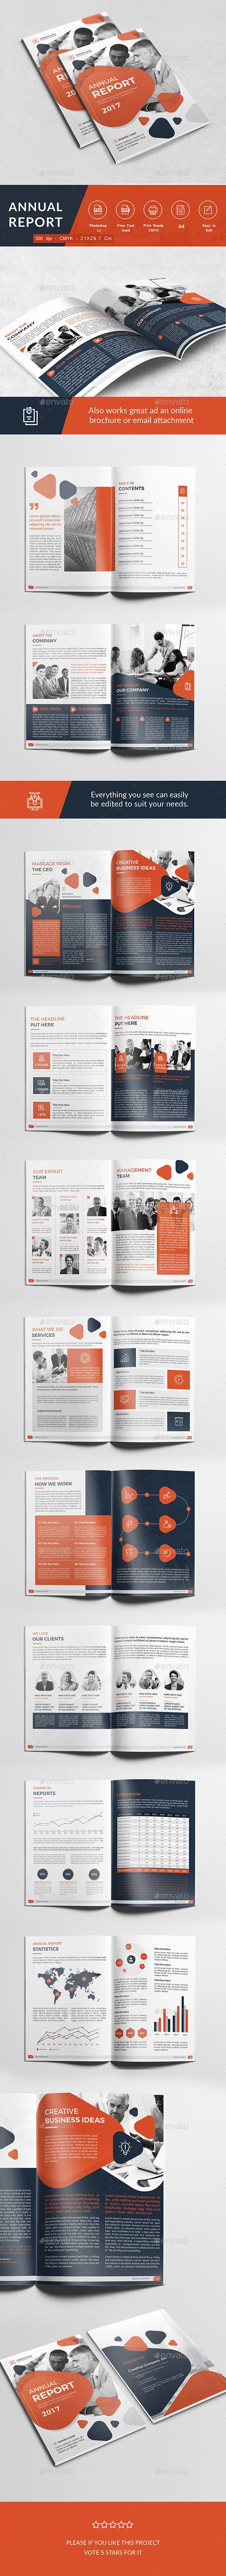 Annual Report by mondoo Annual Report template Professional, clean and modern 22 page corporate Annual report . Just drop in your own pictures and texts,